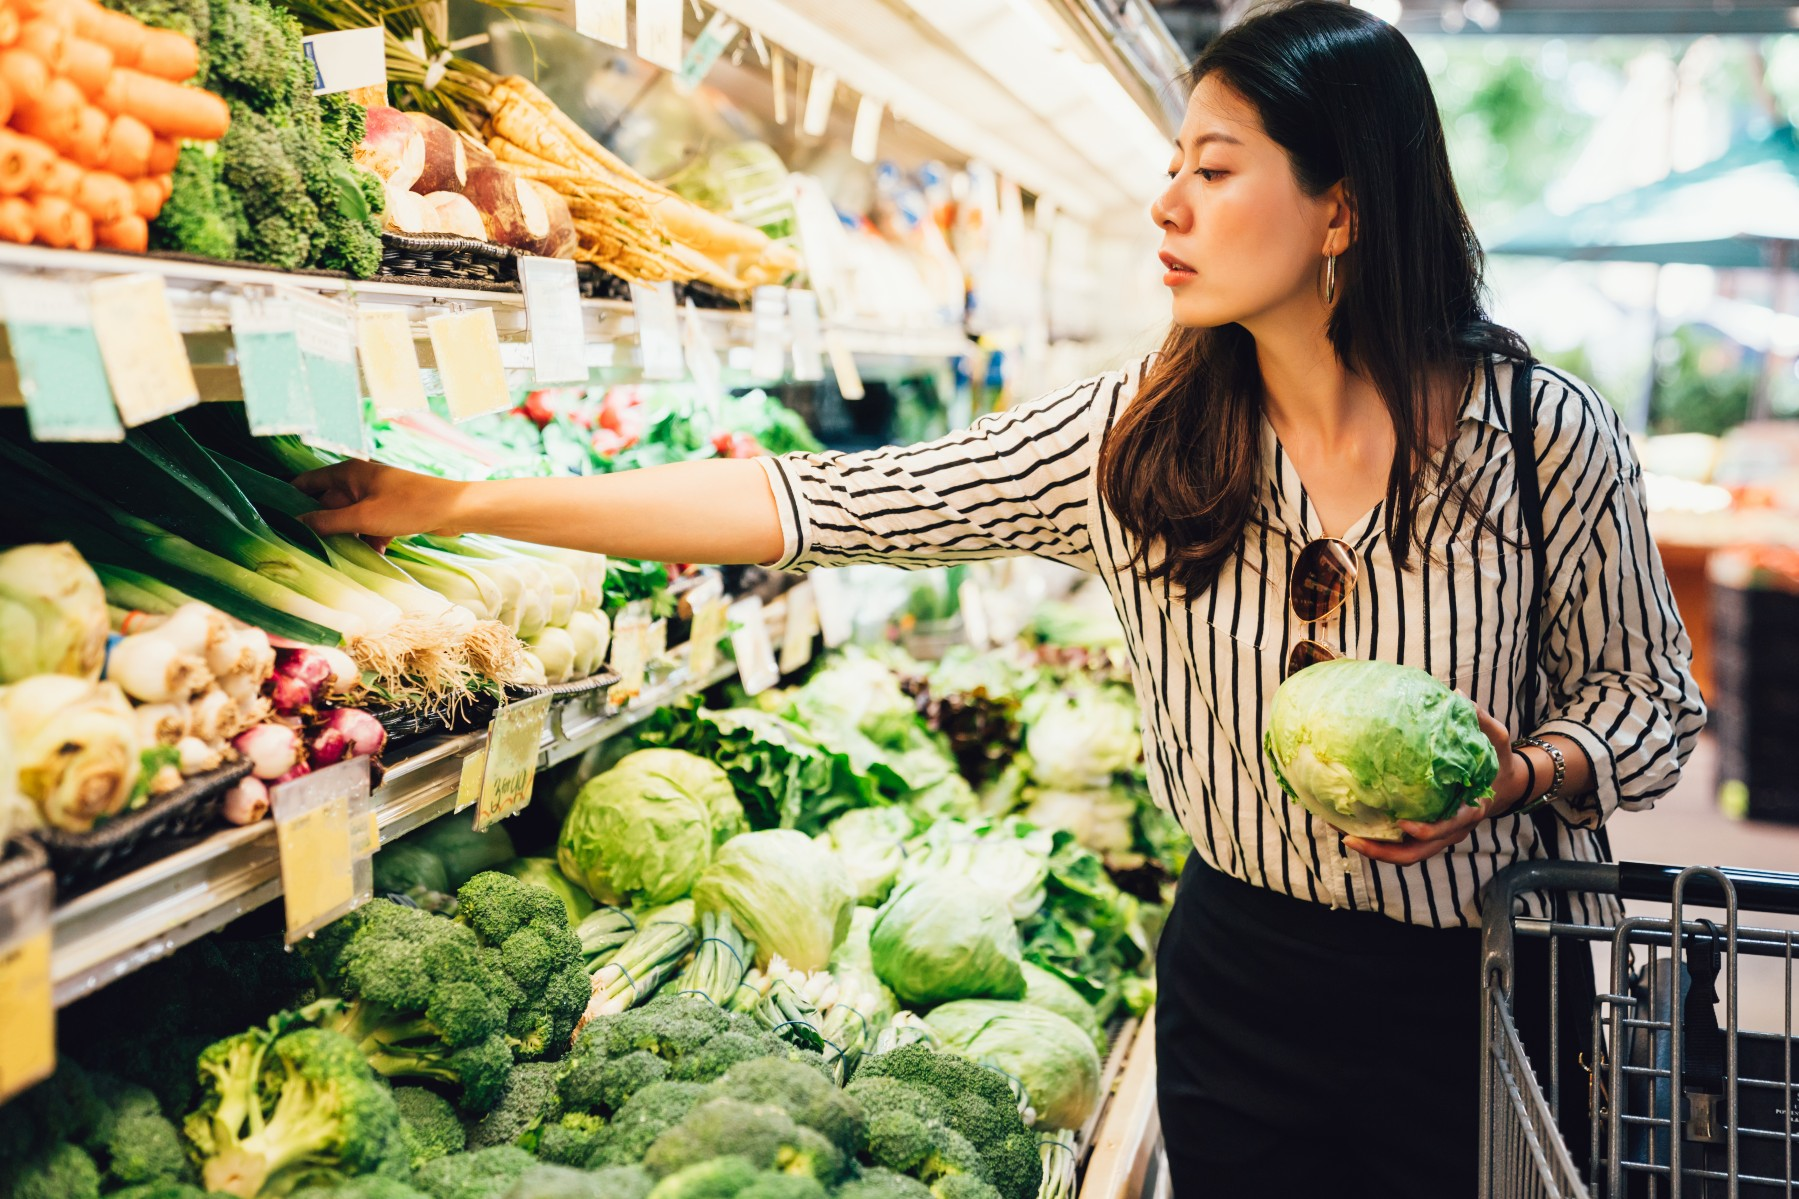 Swiss woman shopping for vegetables in the supermarket